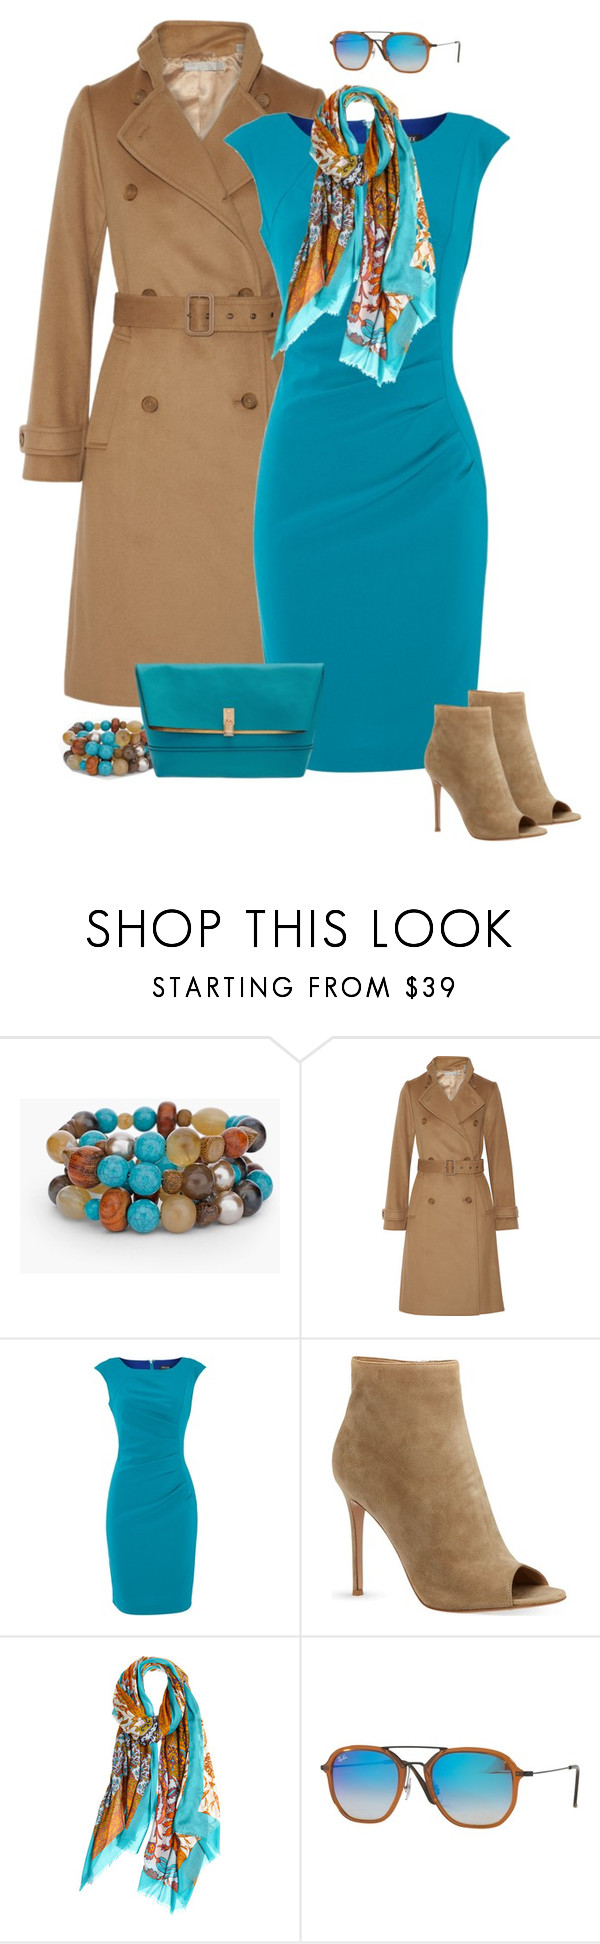 """""""Peep Toe Ankle Booties for Fall Contest Entry"""" by tracy-gowen ❤ liked on Polyvore featuring Chico's, Vince, Episode, Gianvito Rossi, Calypso Private Label, Ray-Ban and Henri Bendel"""